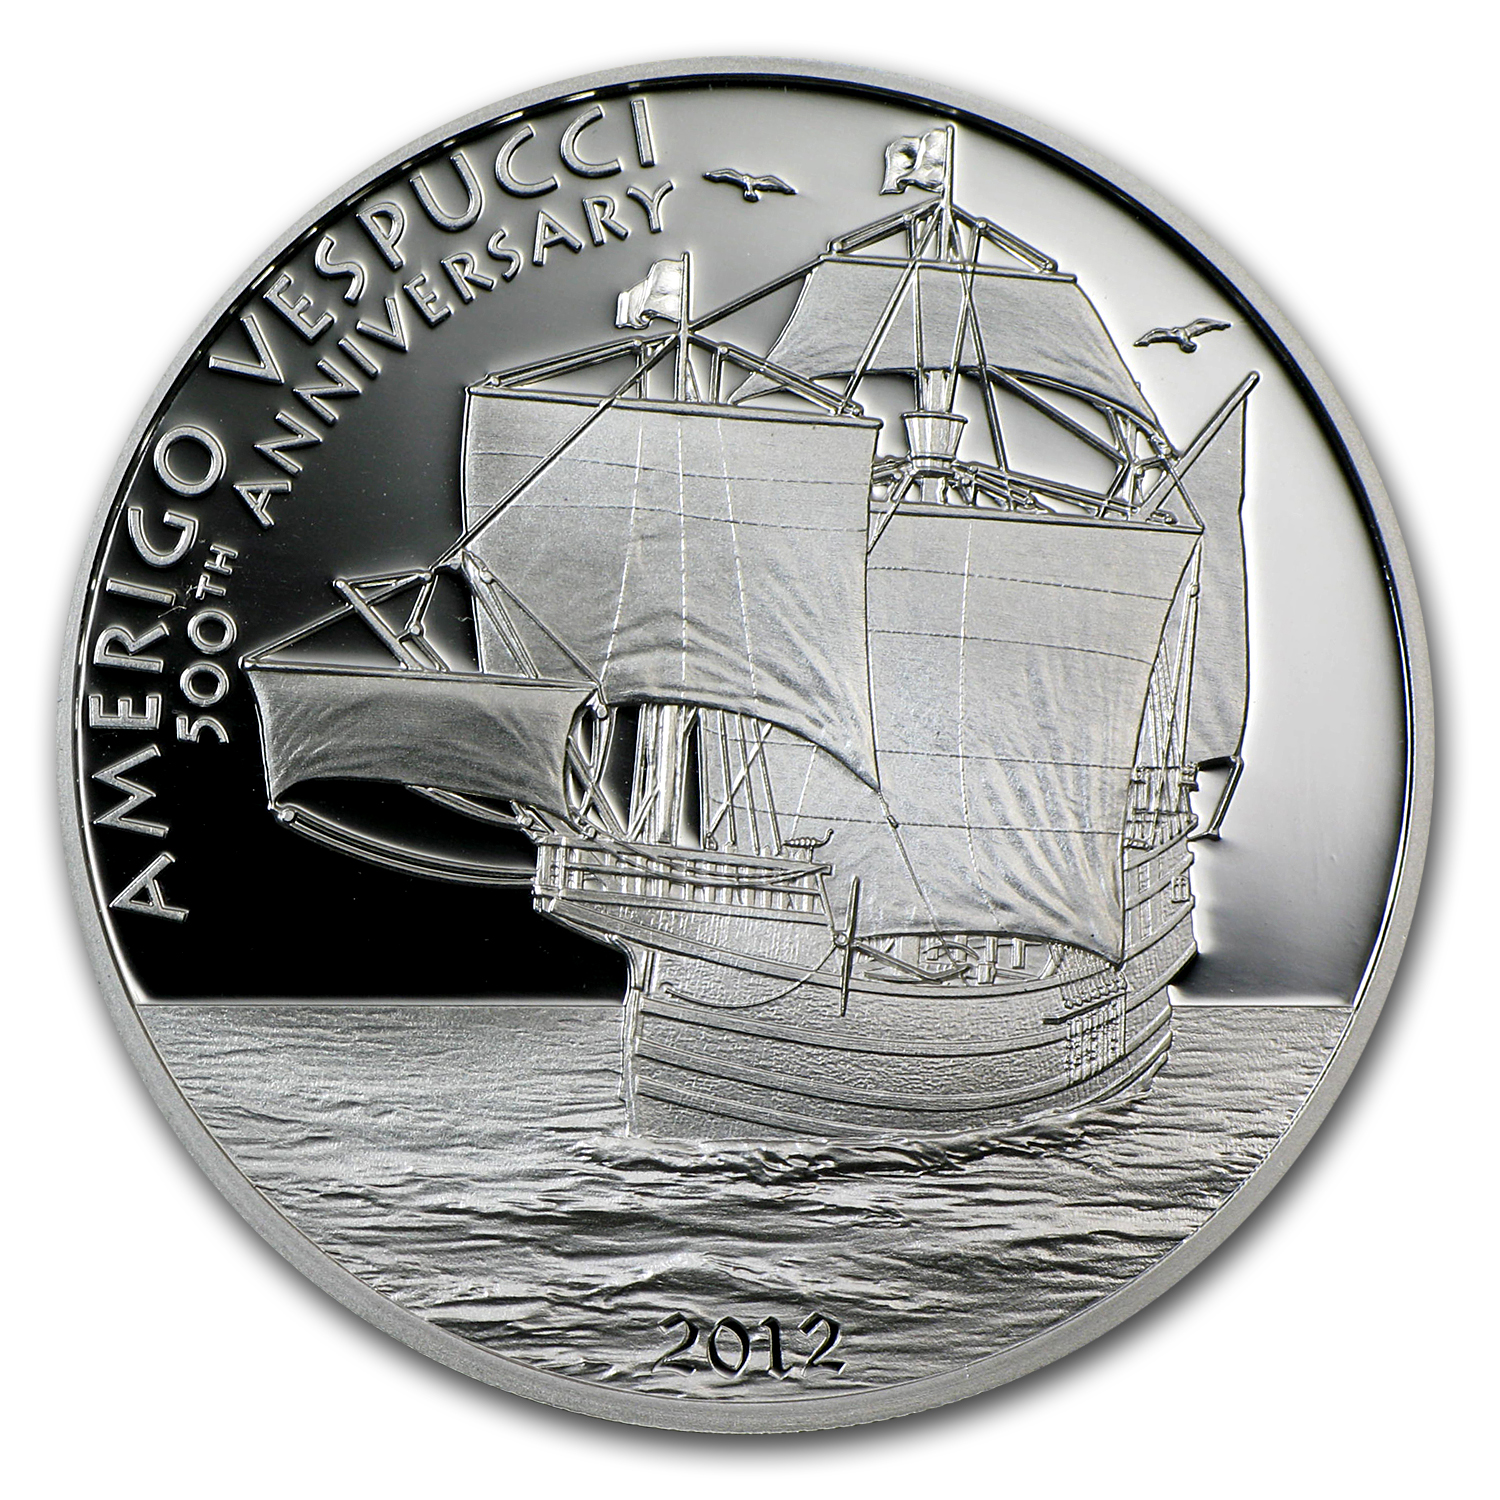 Cook Islands 2012 Proof Silver $5 Amerigo Vespucci - 500th Anniv.